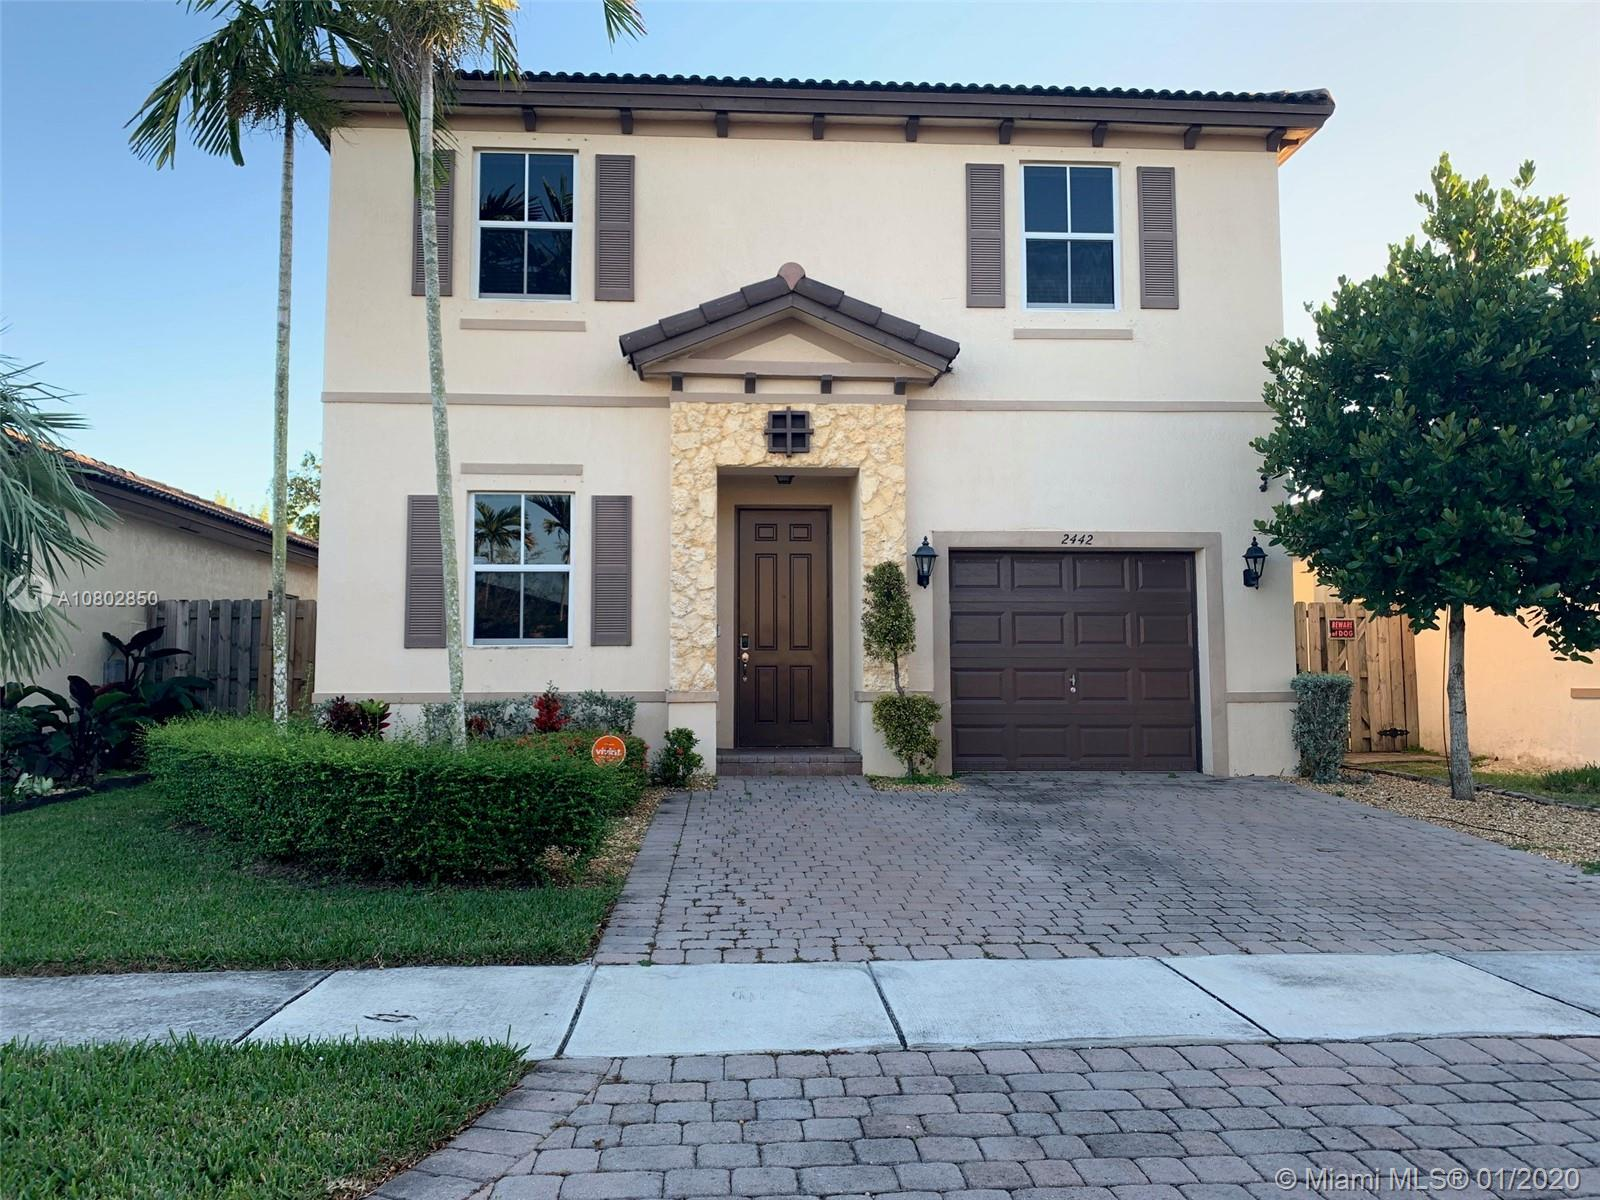 2442 NE 4th St #N/A, Homestead, FL 33033 - Homestead, FL real estate listing